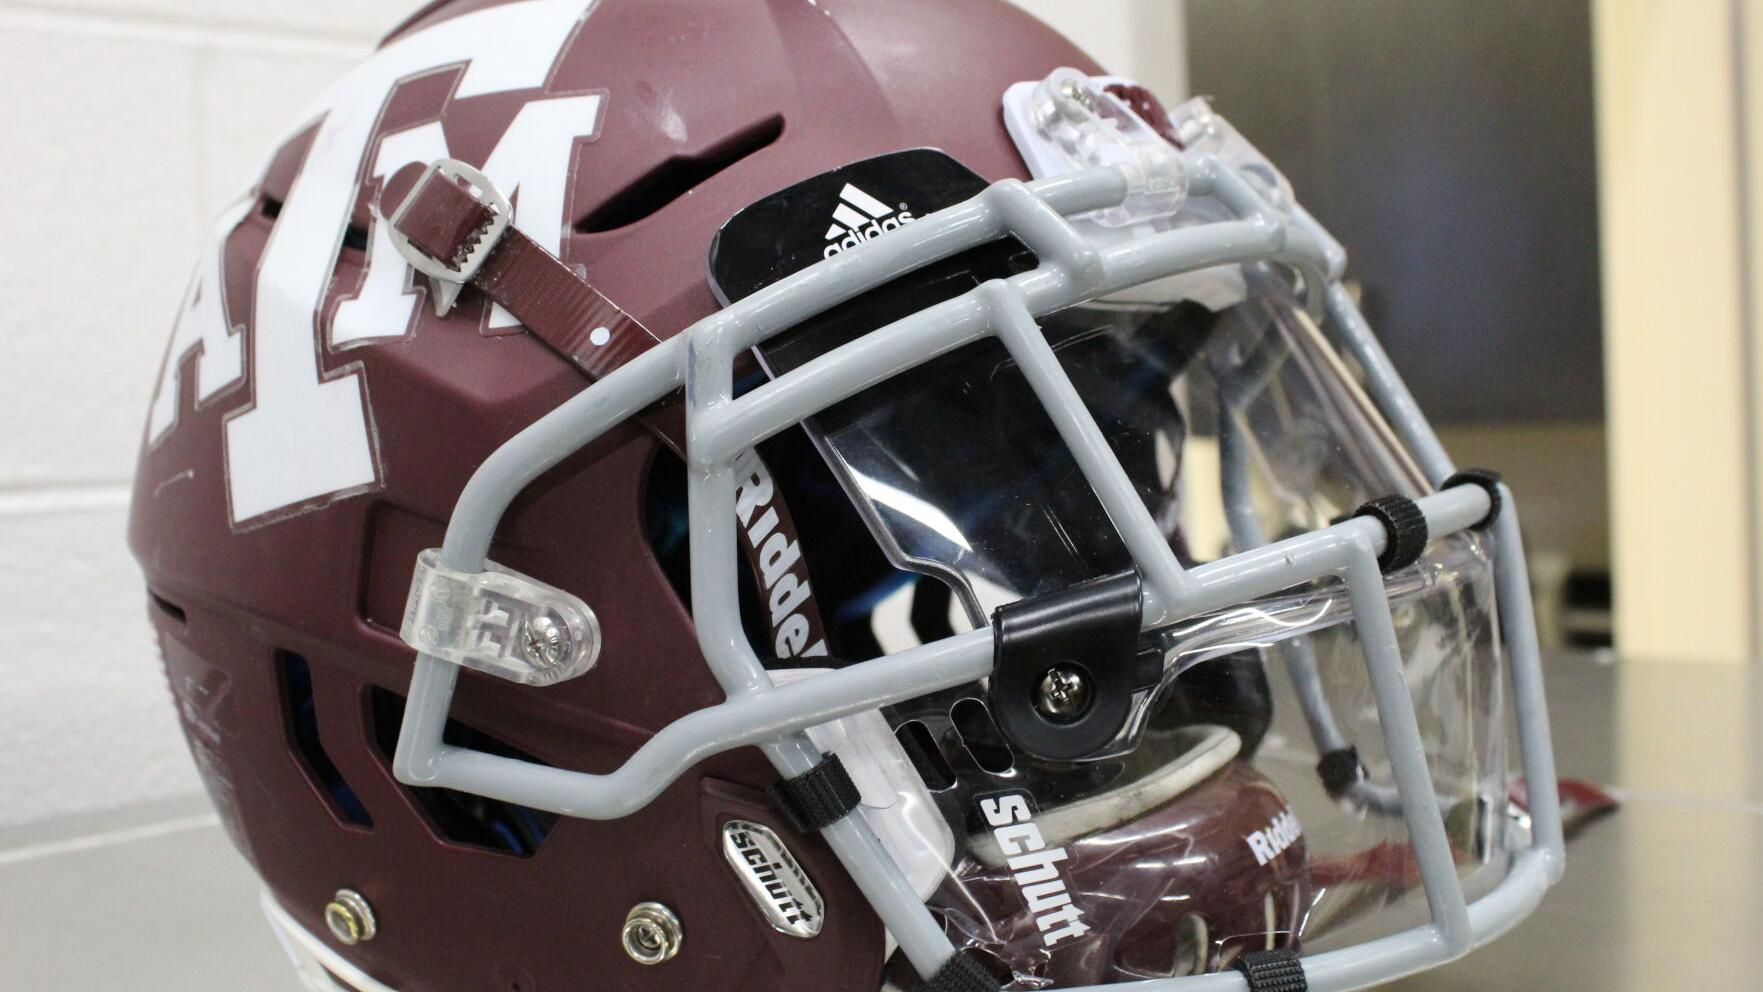 Texas A M Football Team Looking To Add Shields To Facemasks This Season Sports News Theeagle Com